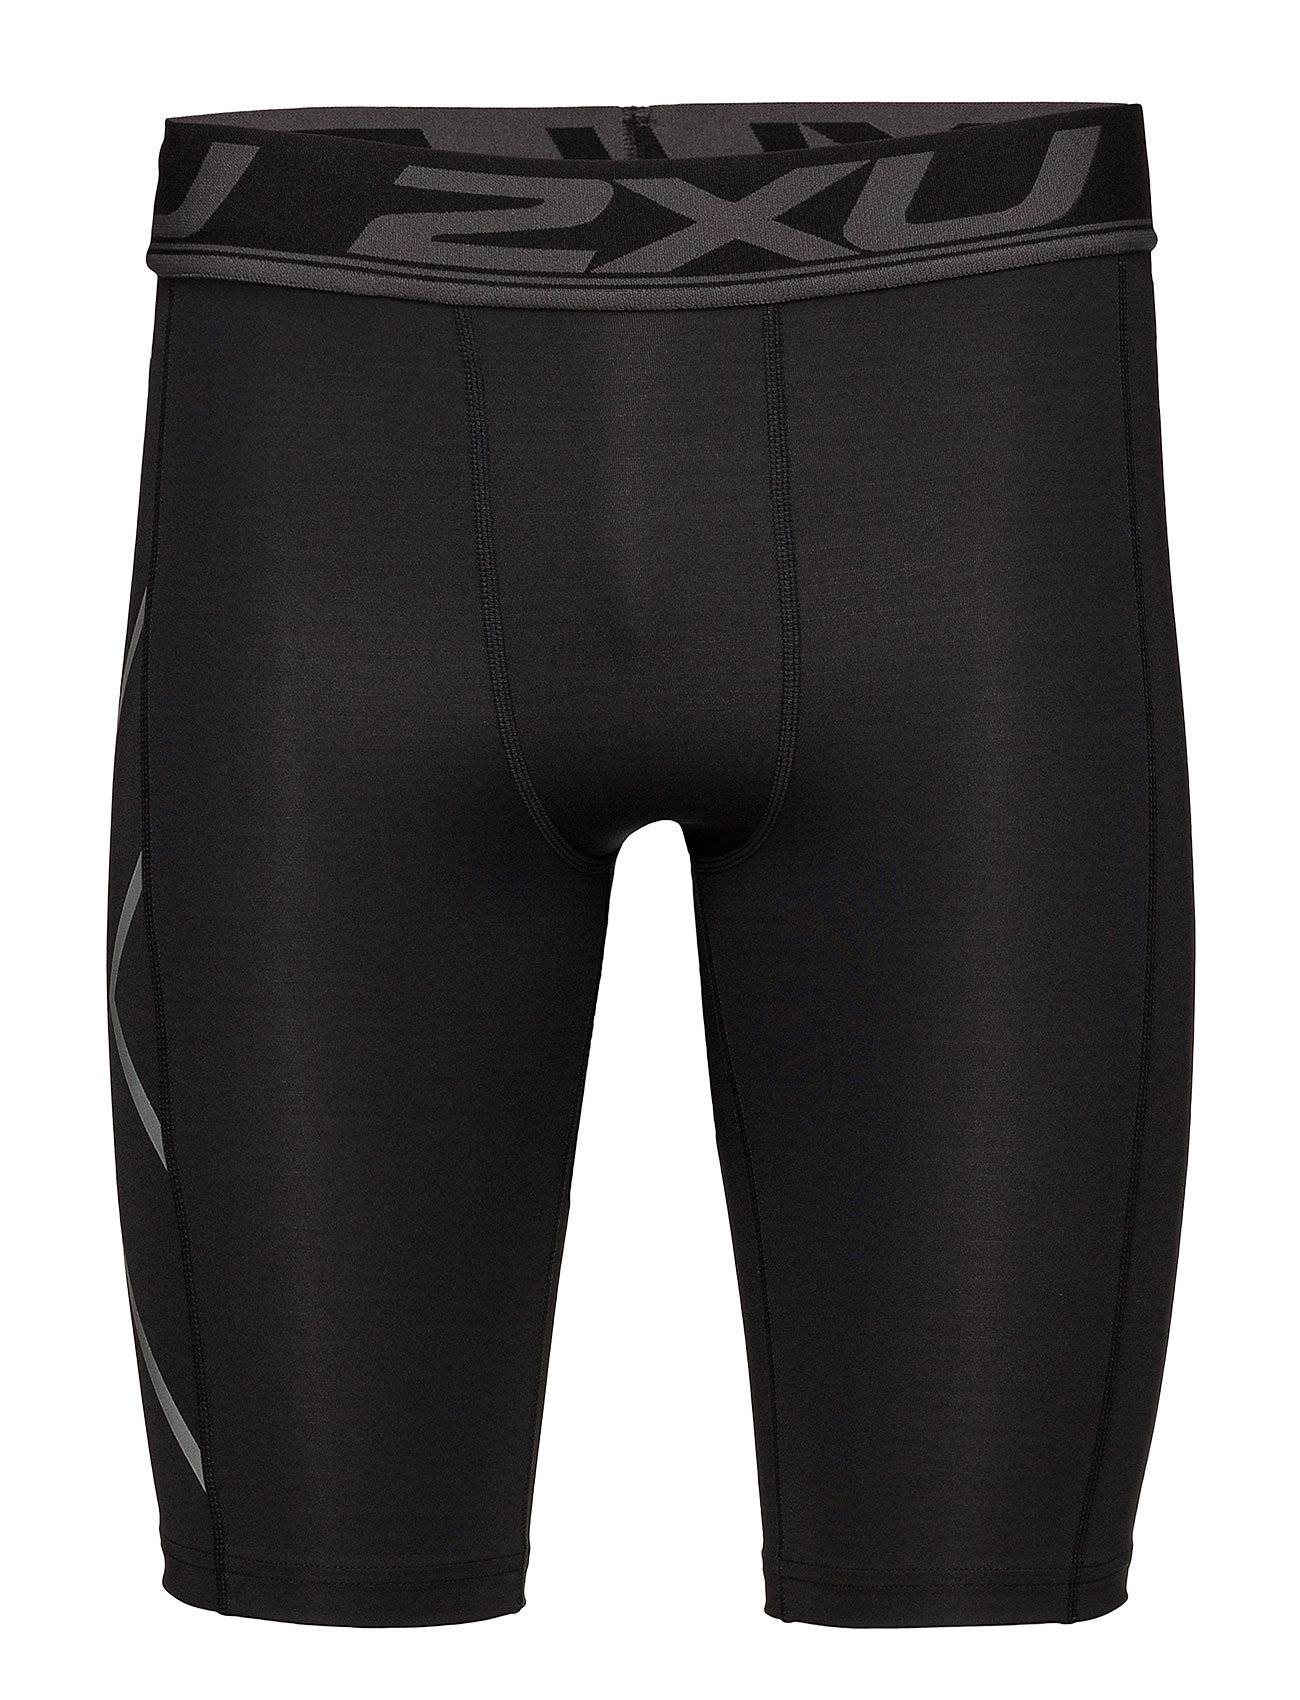 2XU Accelerate Comp Shorts